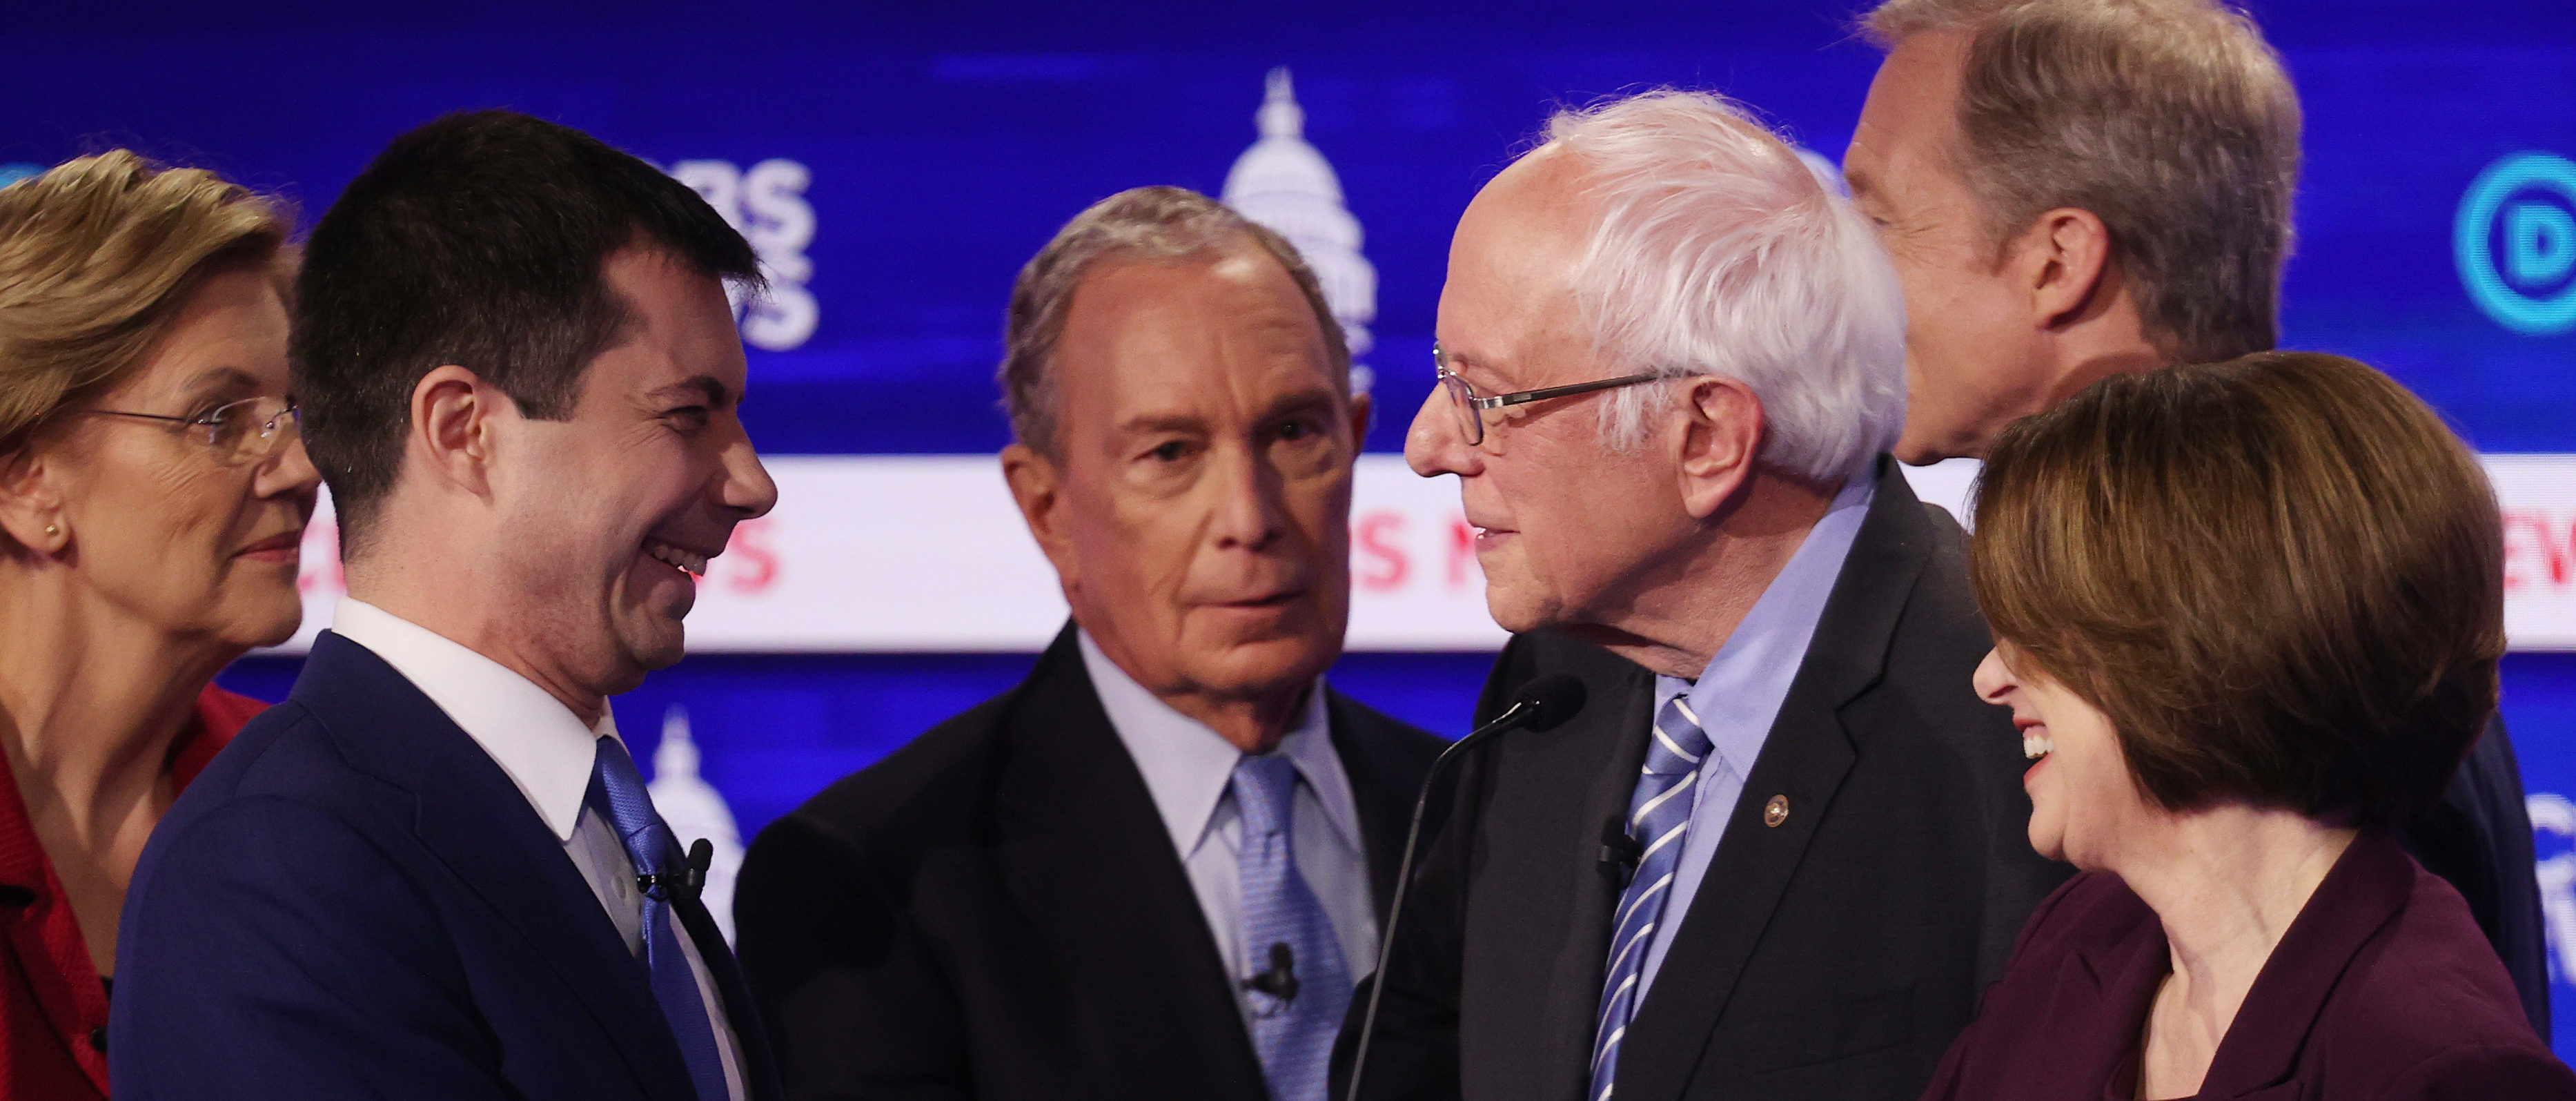 CHARLESTON, SOUTH CAROLINA - FEBRUARY 25: Democratic presidential candidates Sen. Elizabeth Warren (D-MA), former South Bend, Indiana Mayor Pete Buttigieg, former New York City Mayor Mike Bloomberg, Sen. Bernie Sanders (I-VT), Sen. Amy Klobuchar (D-MN), and Tom Steyer speak after the Democratic presidential primary debate at the Charleston Gaillard Center on February 25, 2020 in Charleston, South Carolina. Seven candidates qualified for the debate, hosted by CBS News and Congressional Black Caucus Institute, ahead of South Carolina's primary in four days. (Photo by Win McNamee/Getty Images)